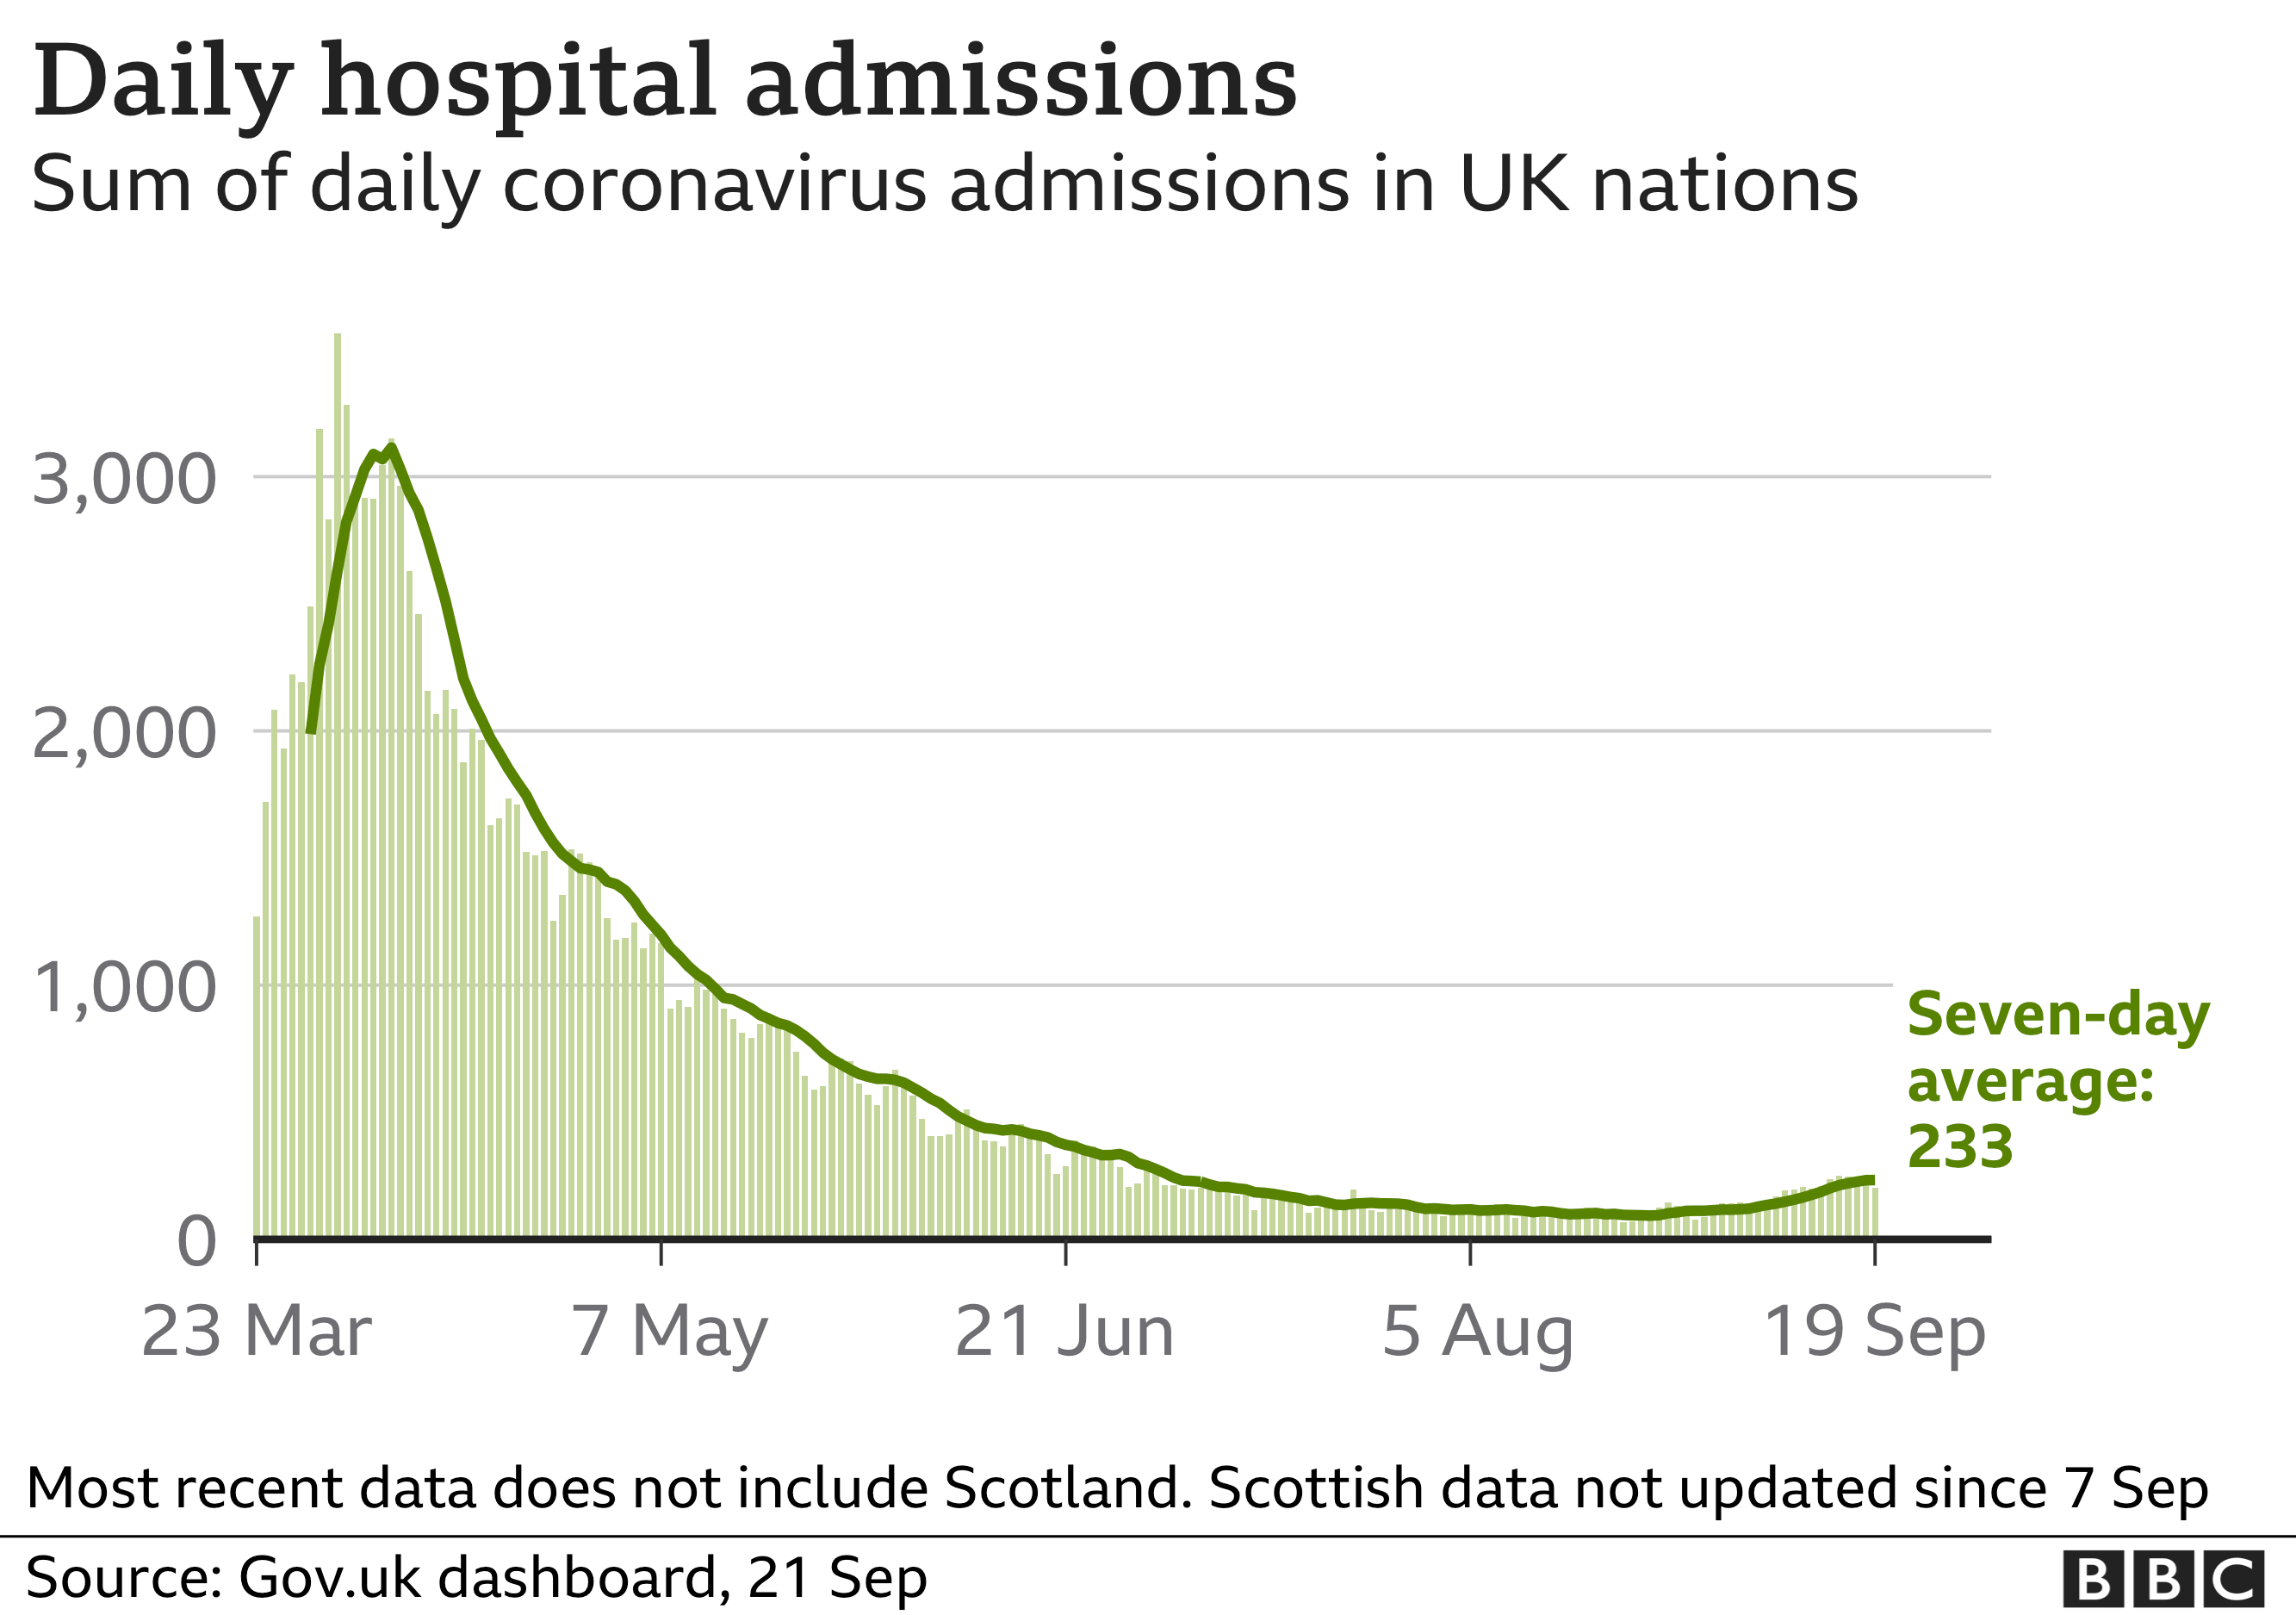 UK daily hospital admissions